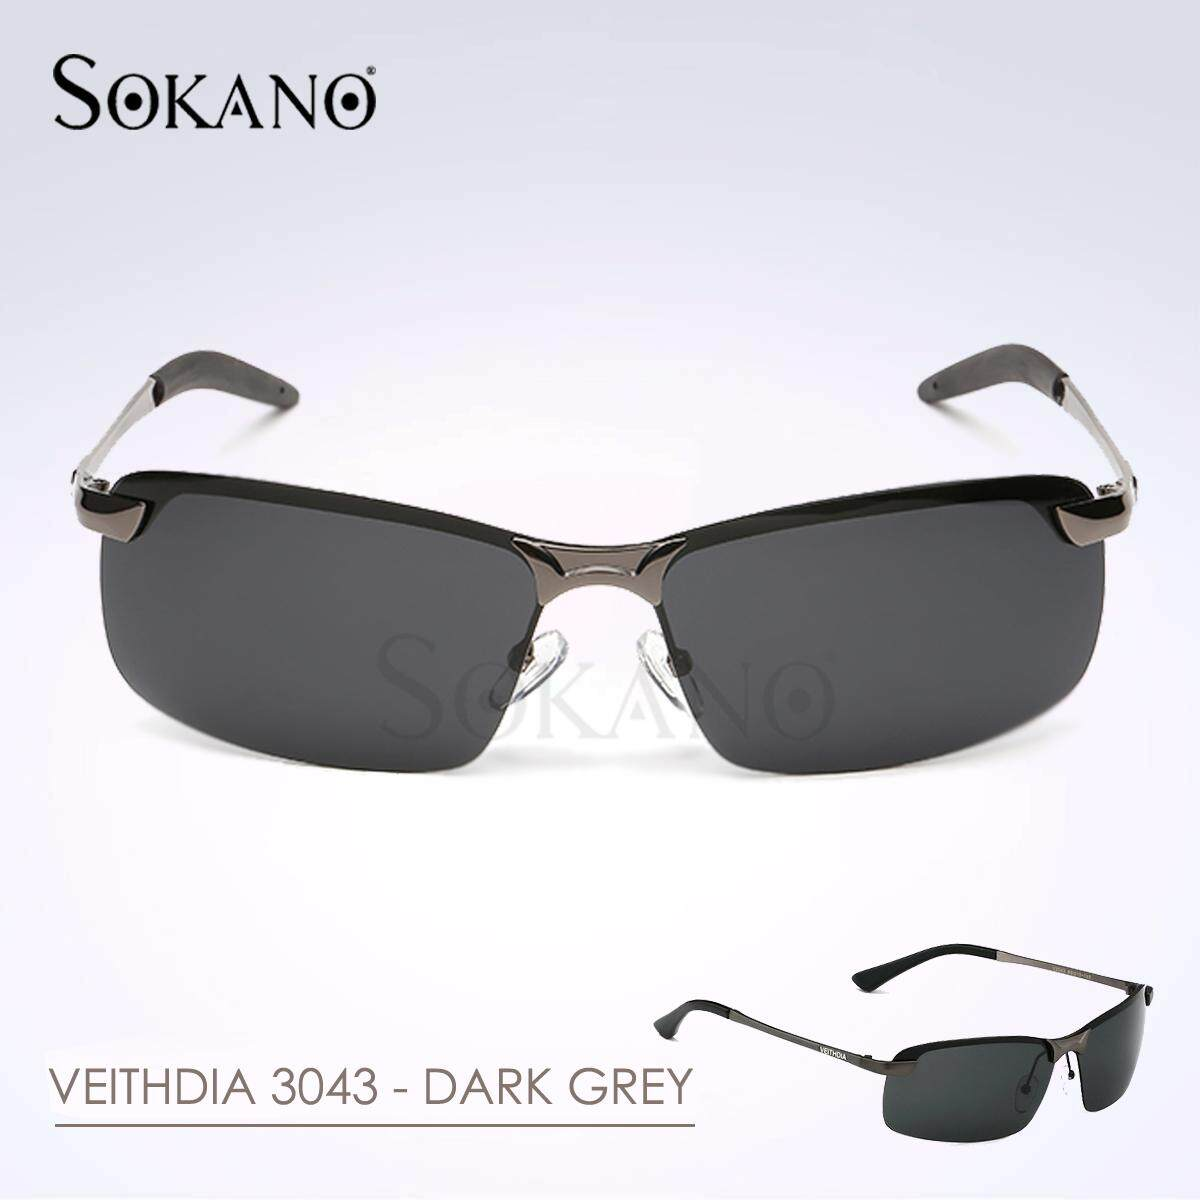 VEITHDIA 3043 Polarized Aviator Design Men Sunglasses- Dark Grey